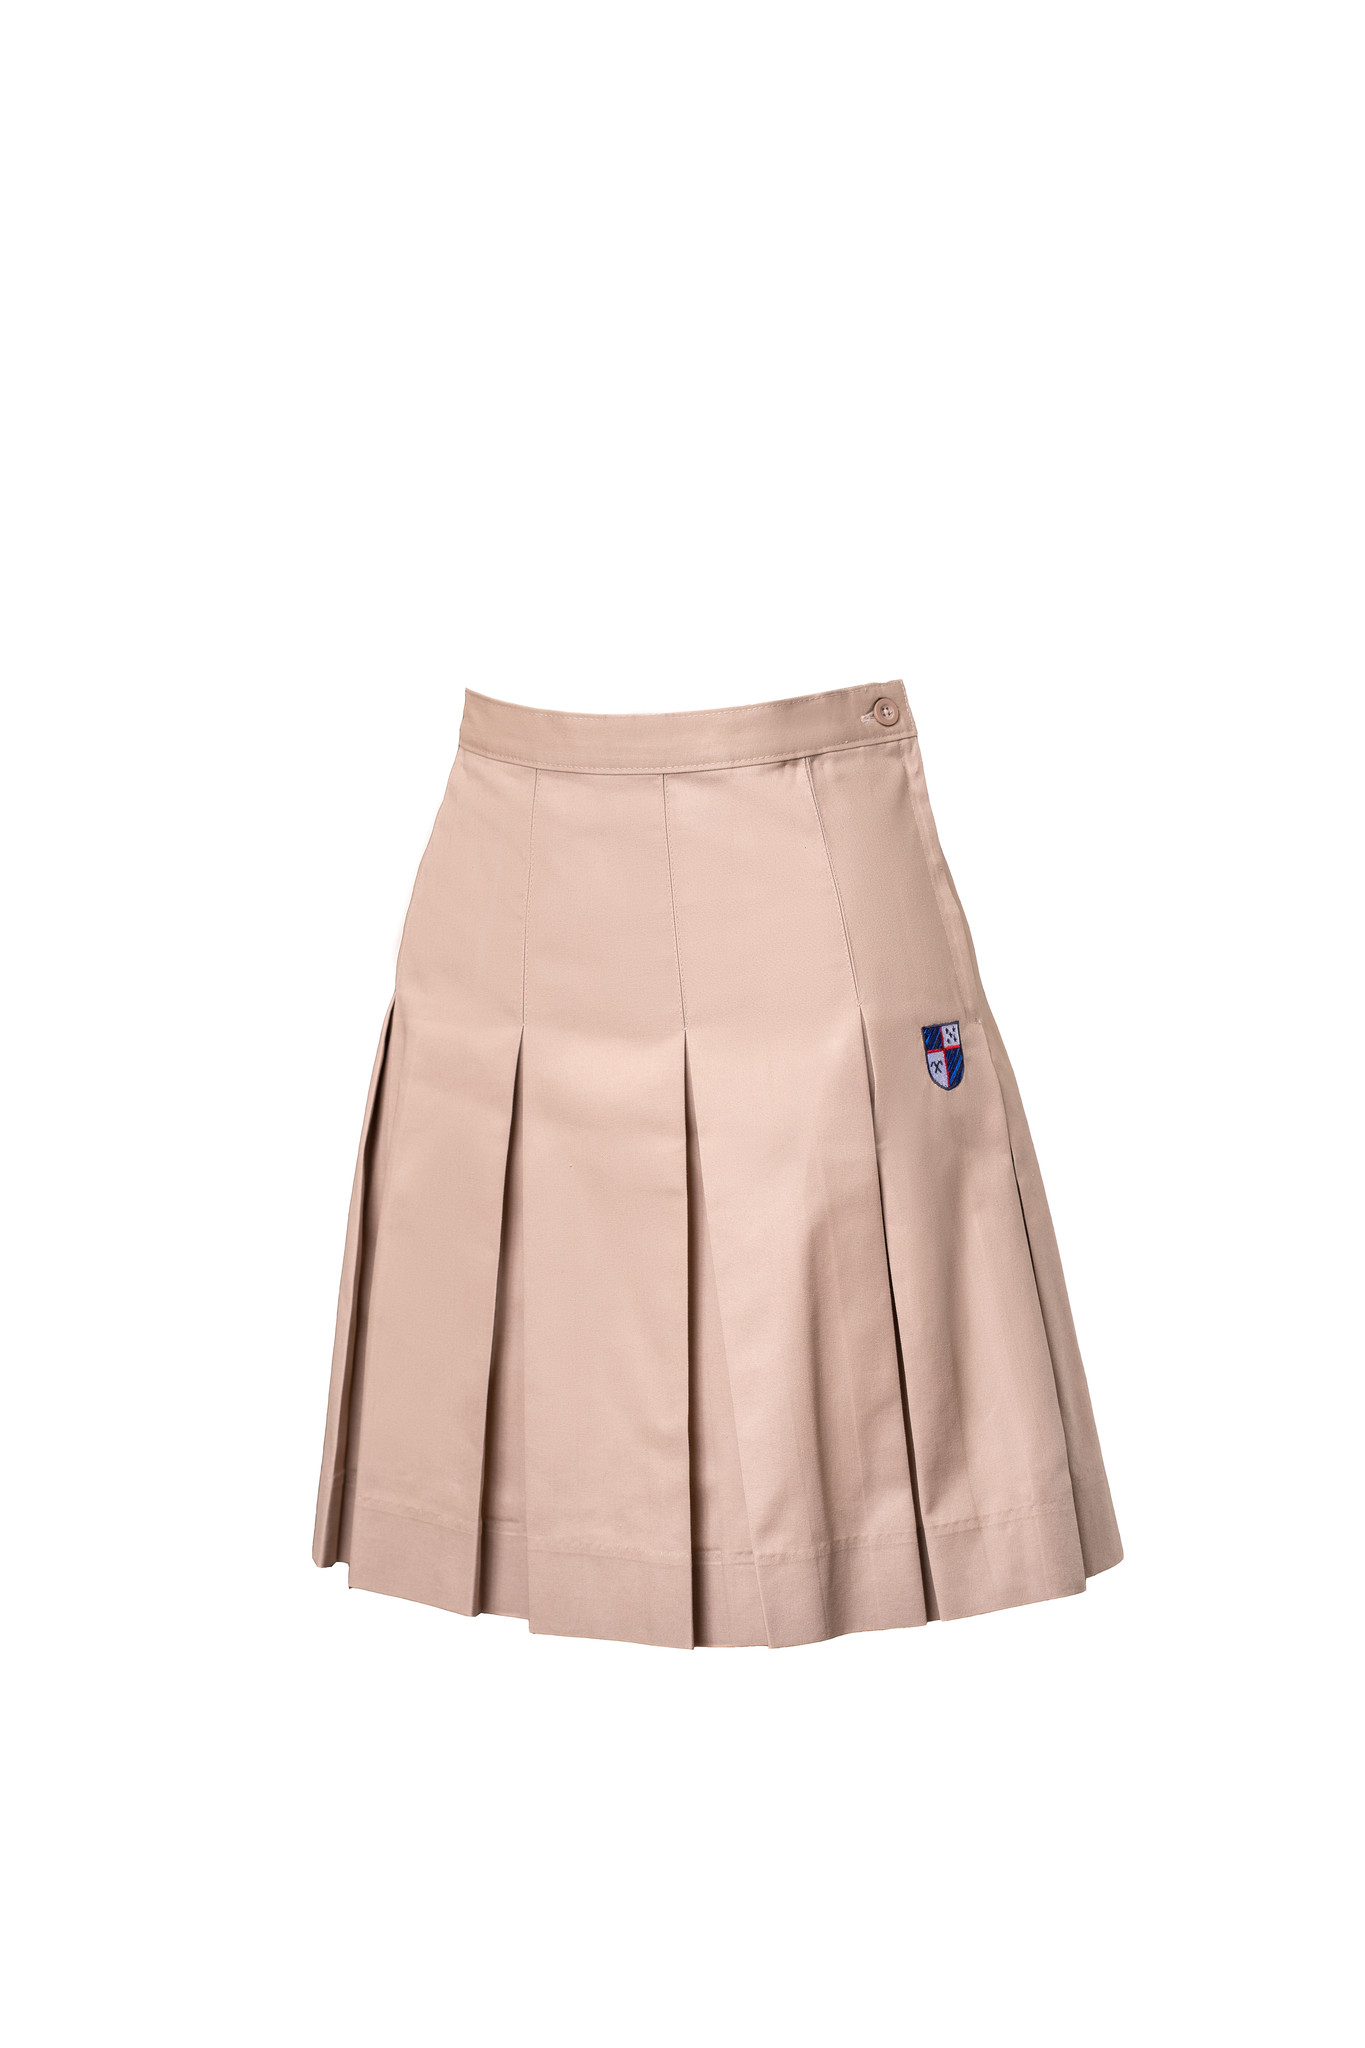 La Salle College Preparatory Khaki Skirt